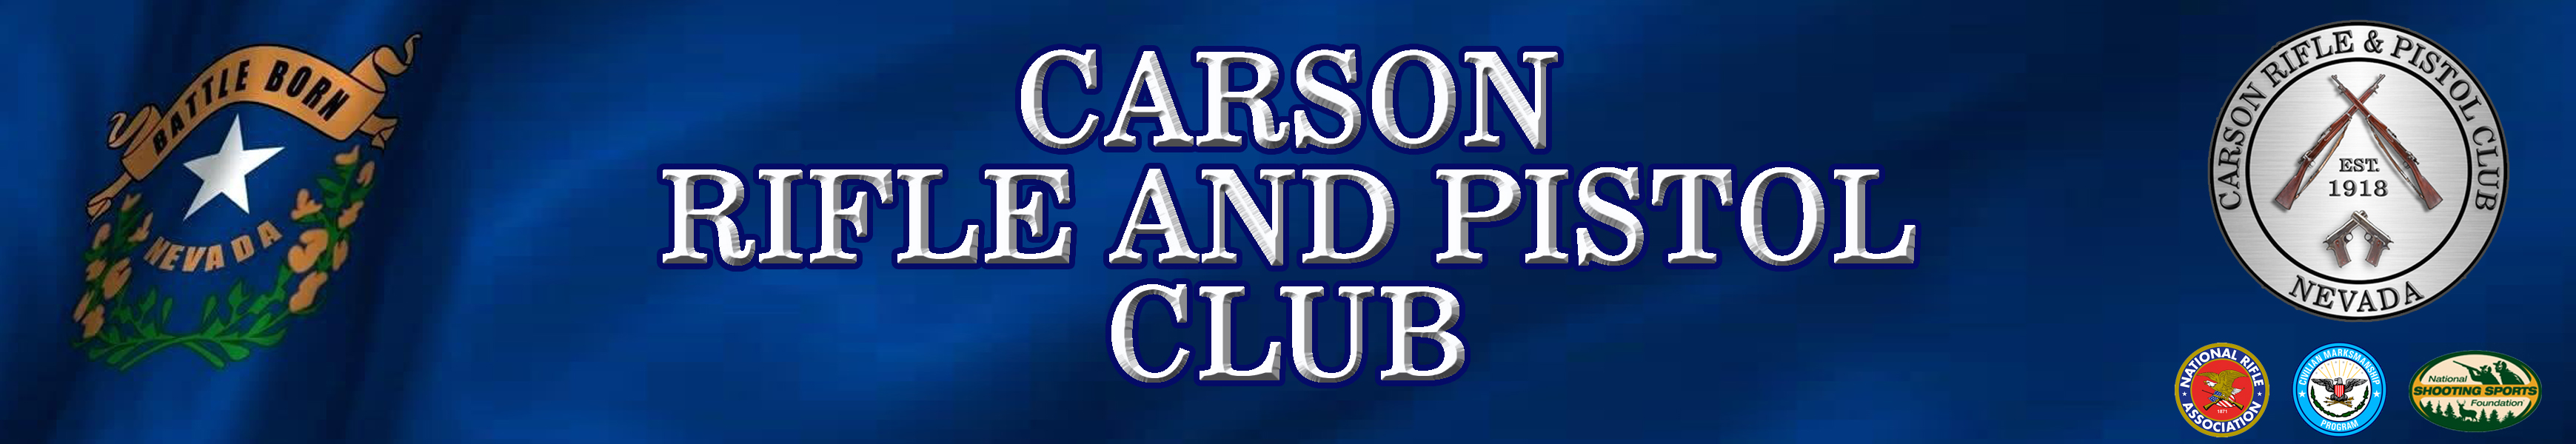 CARSON RIFLE AND PISTOL CLUB